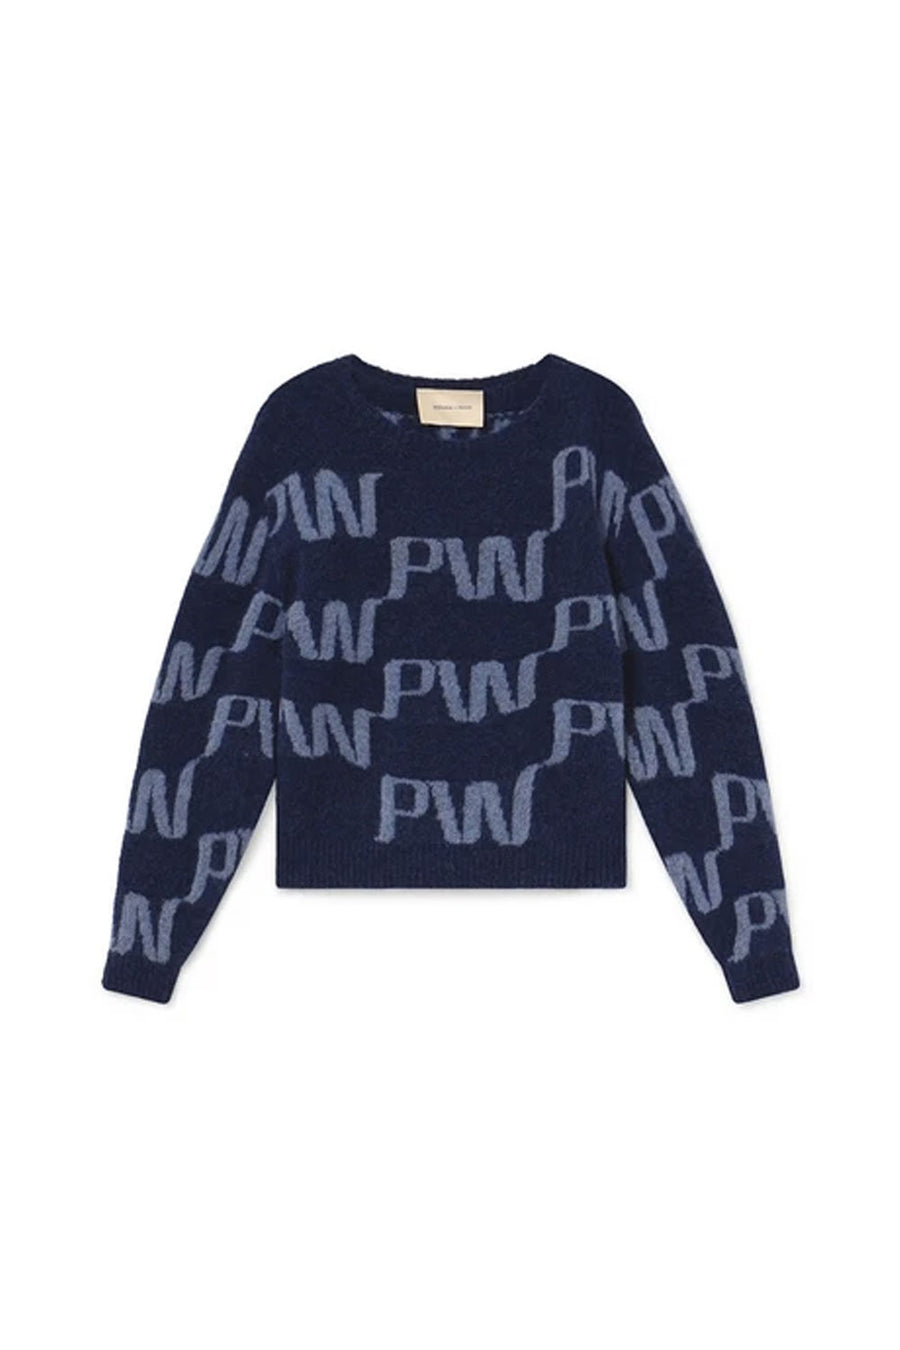 Windows Knit | Dark Navy | PALOMA WOOL NZ | Tops NZ | Black Box Boutique Auckland | Womens Fashion NZ